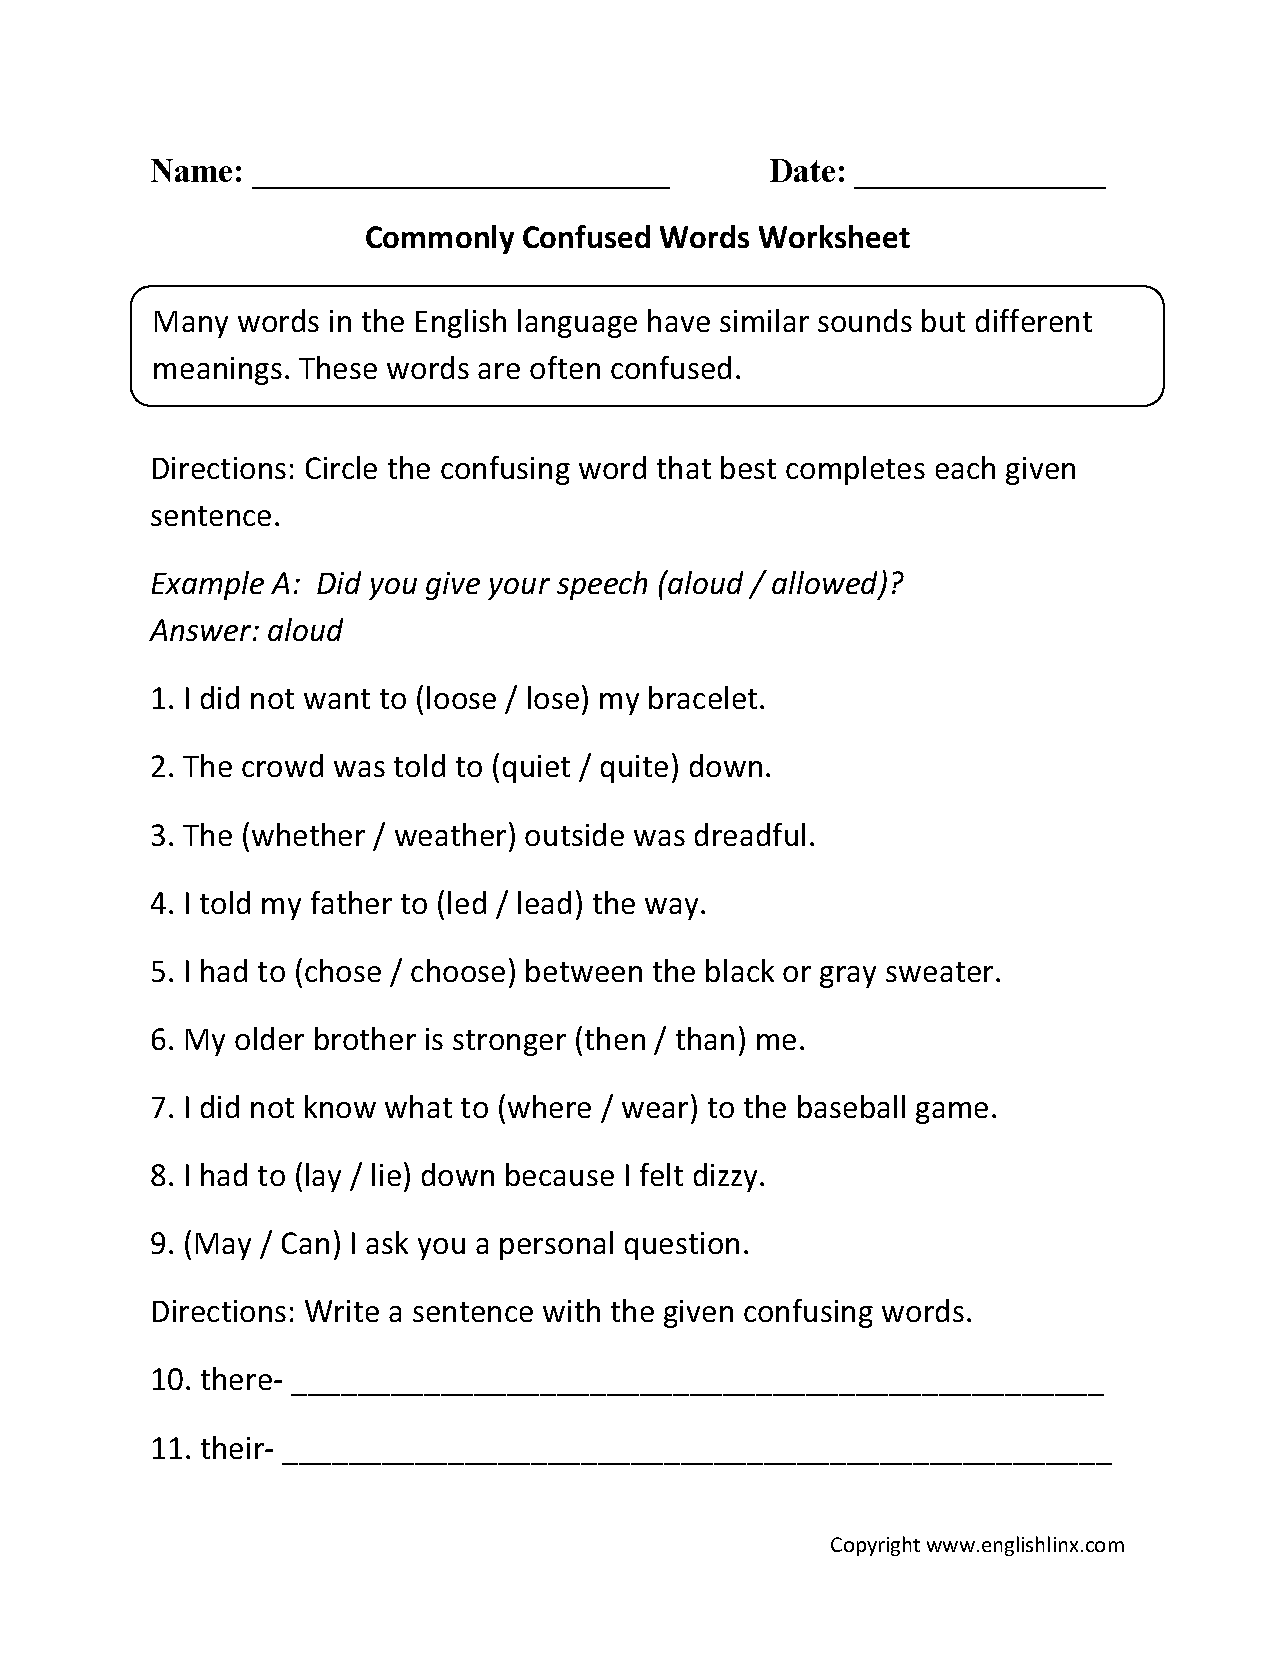 Commonly Confused Words Worksheets